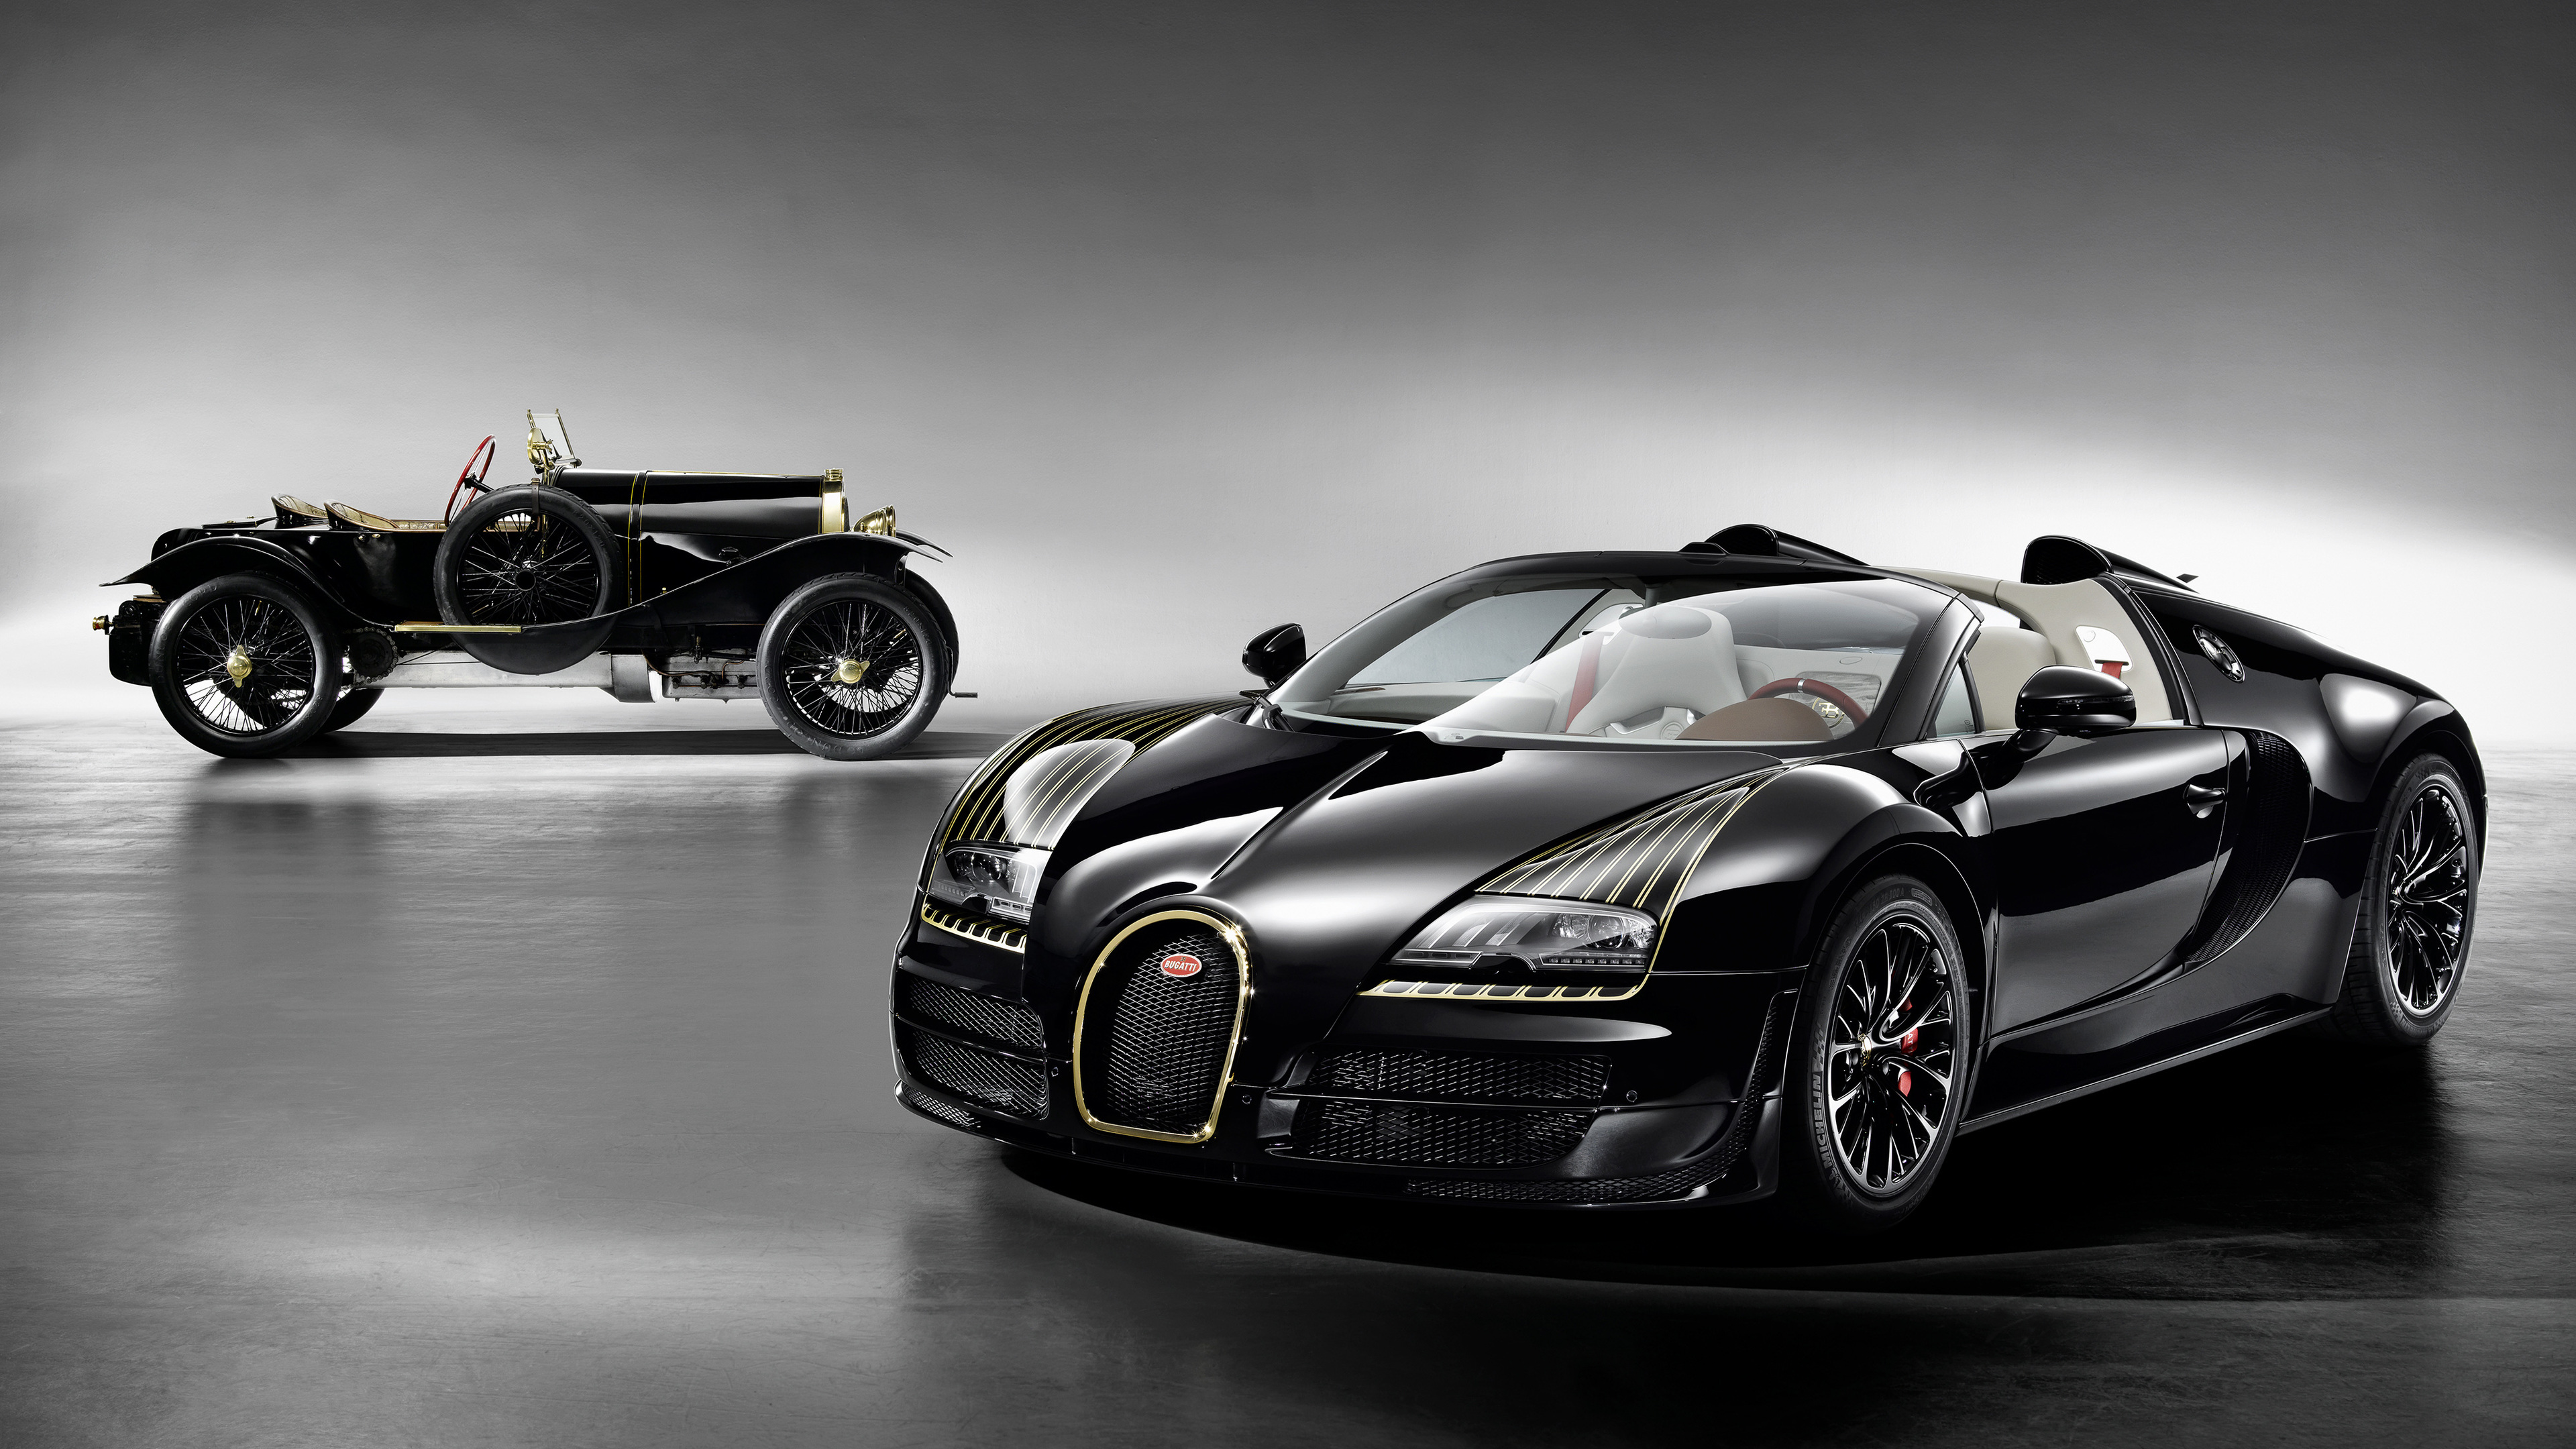 bugatti 4k 1539108068 - Bugatti 4K - hd-wallpapers, cars wallpapers, bugatti wallpapers, 4k-wallpapers